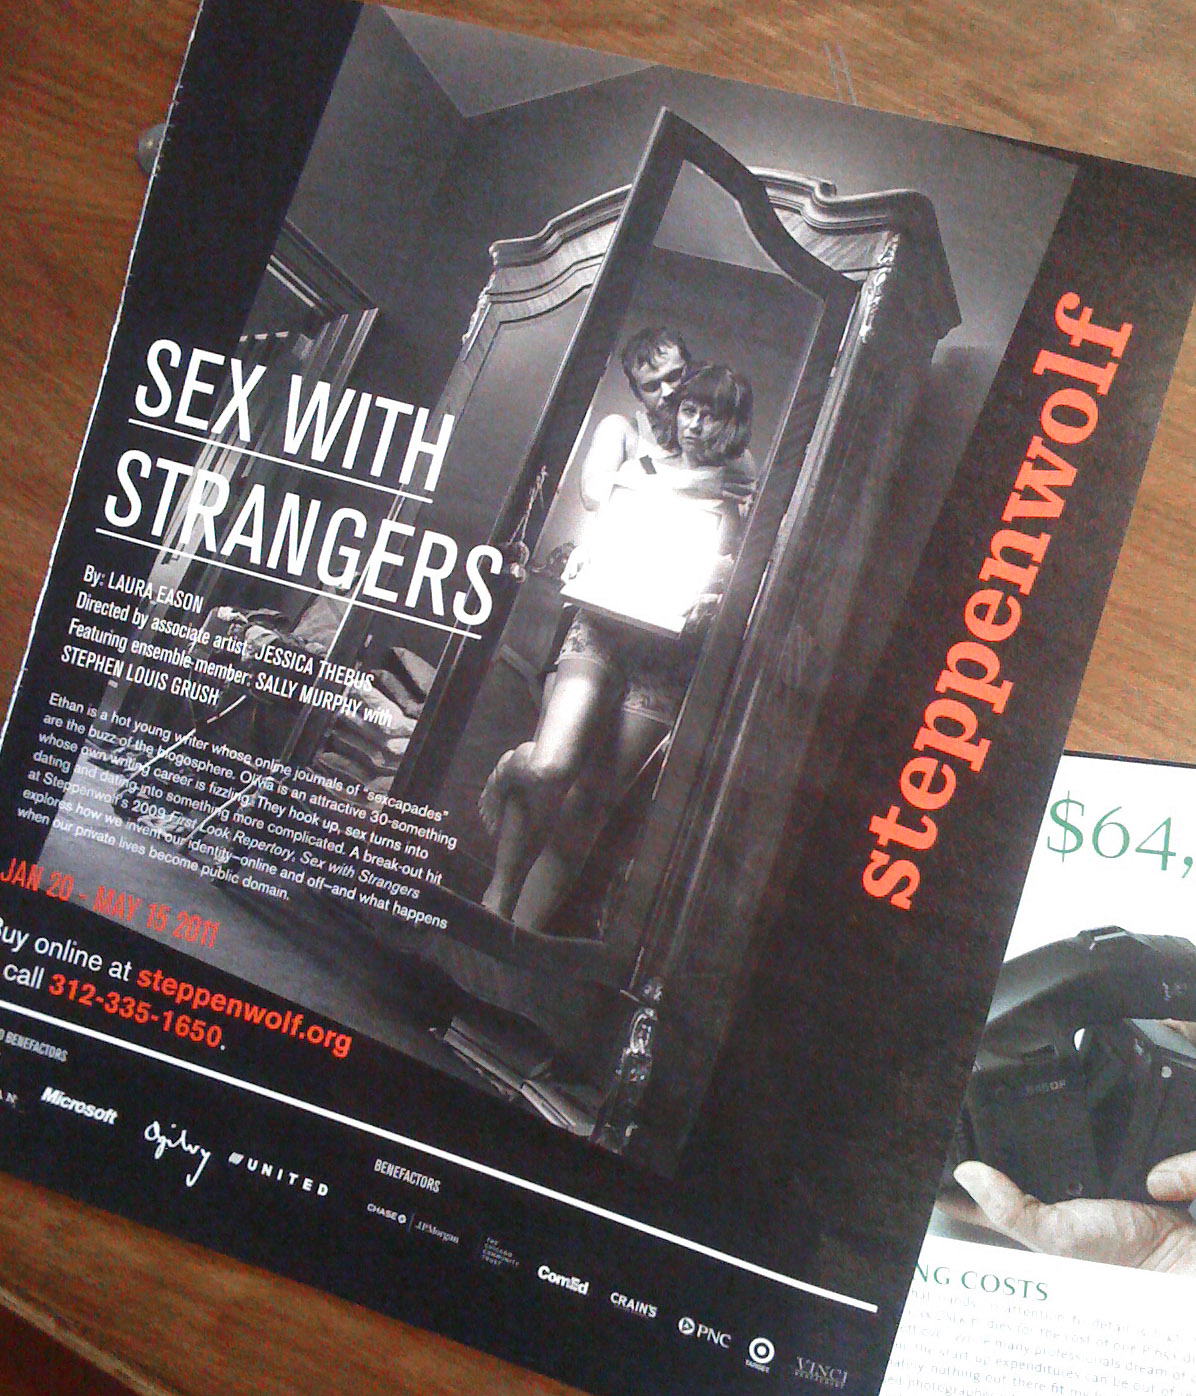 Advertisement for Steppenwolf Theater's production of Sex with Strangers.